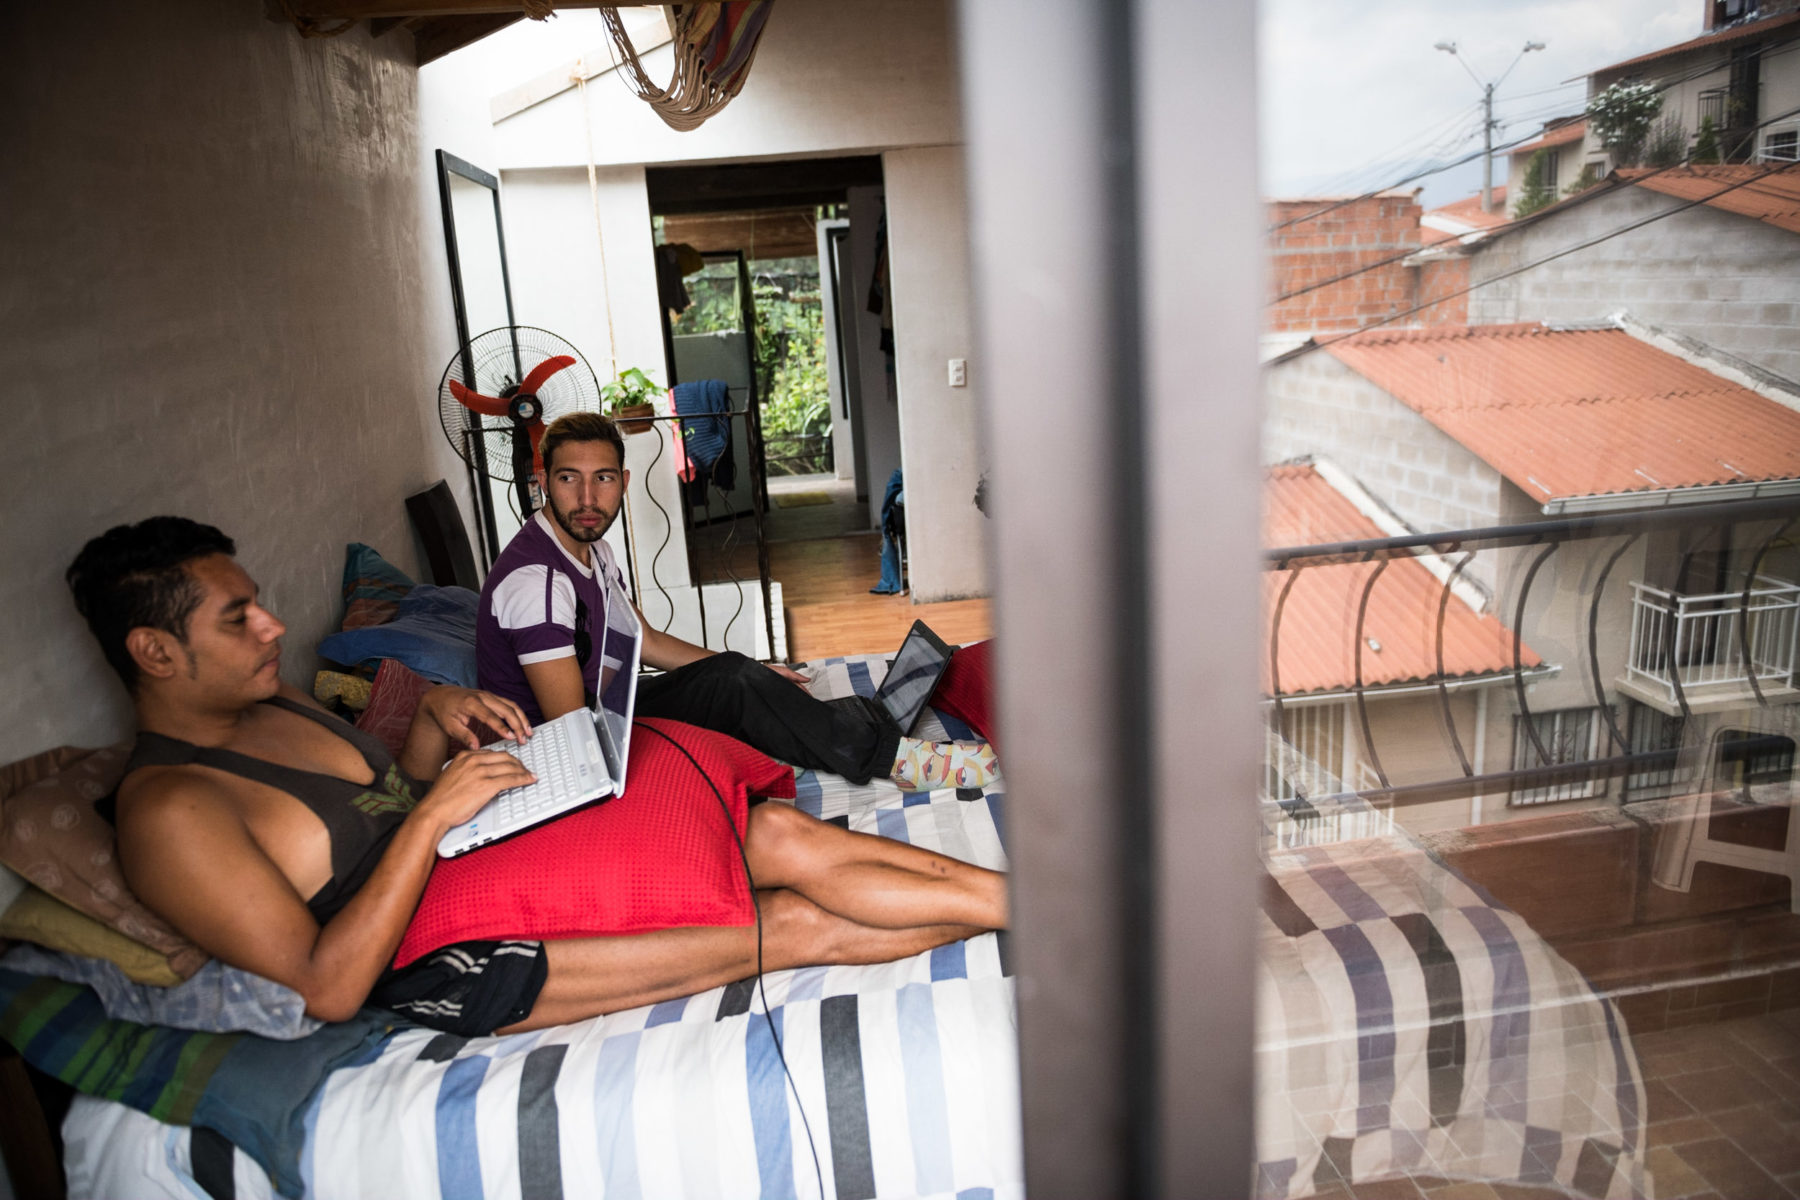 Alejo prefers to work in bed. Manuel is a freelance journalist and university lecturer, Victor and Alejandro organize theatre and dance projects with children, teenagers and adults from the neighborhood.